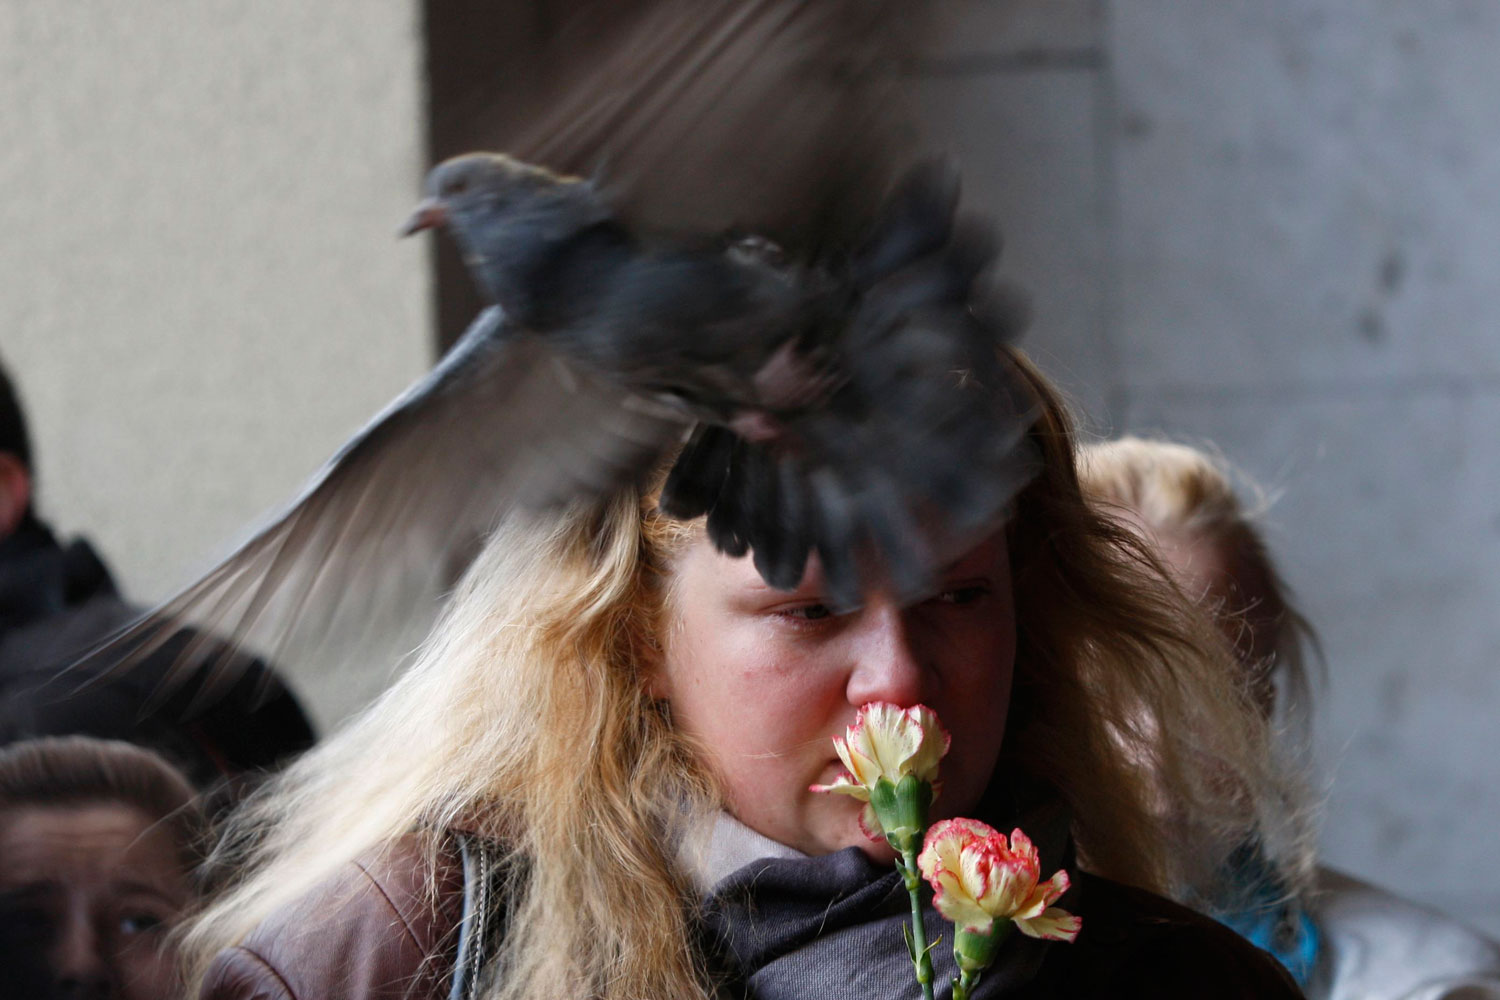 April 12, 2011. A woman mourns as a bird passes by her at the entrance to the Oktyabrskaya station of the Minsk subway in Belarus. The Belarusian government said a bomb placed under a bench at the subway station exploded on April11 as people were riding the trains during the evening rush hour. Twelve were killed.